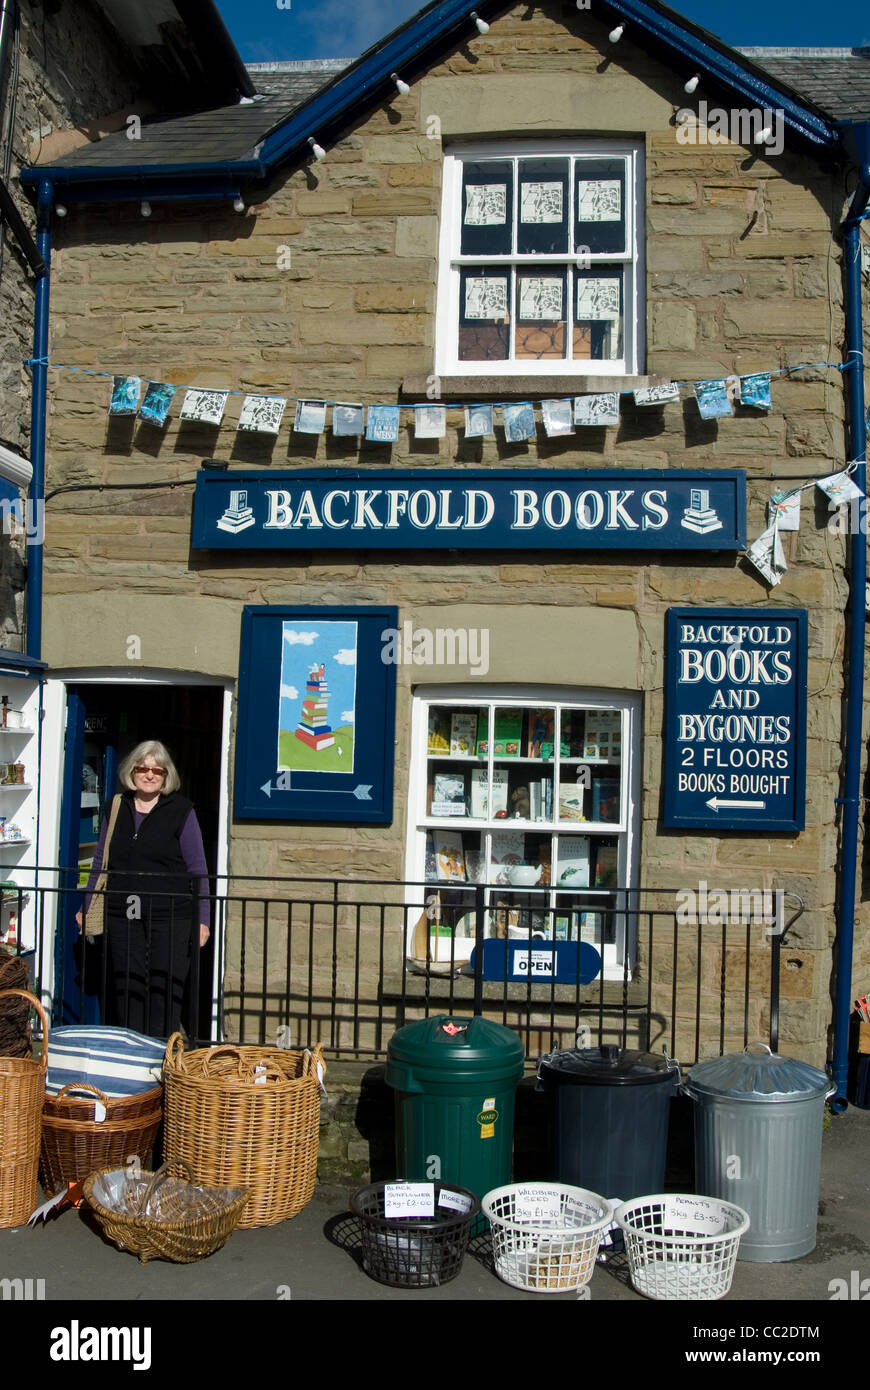 Woman standing in the doorway of a bookstore in Hay-on-Wye, the Welsh border town which has become a booklovers' - Stock Image